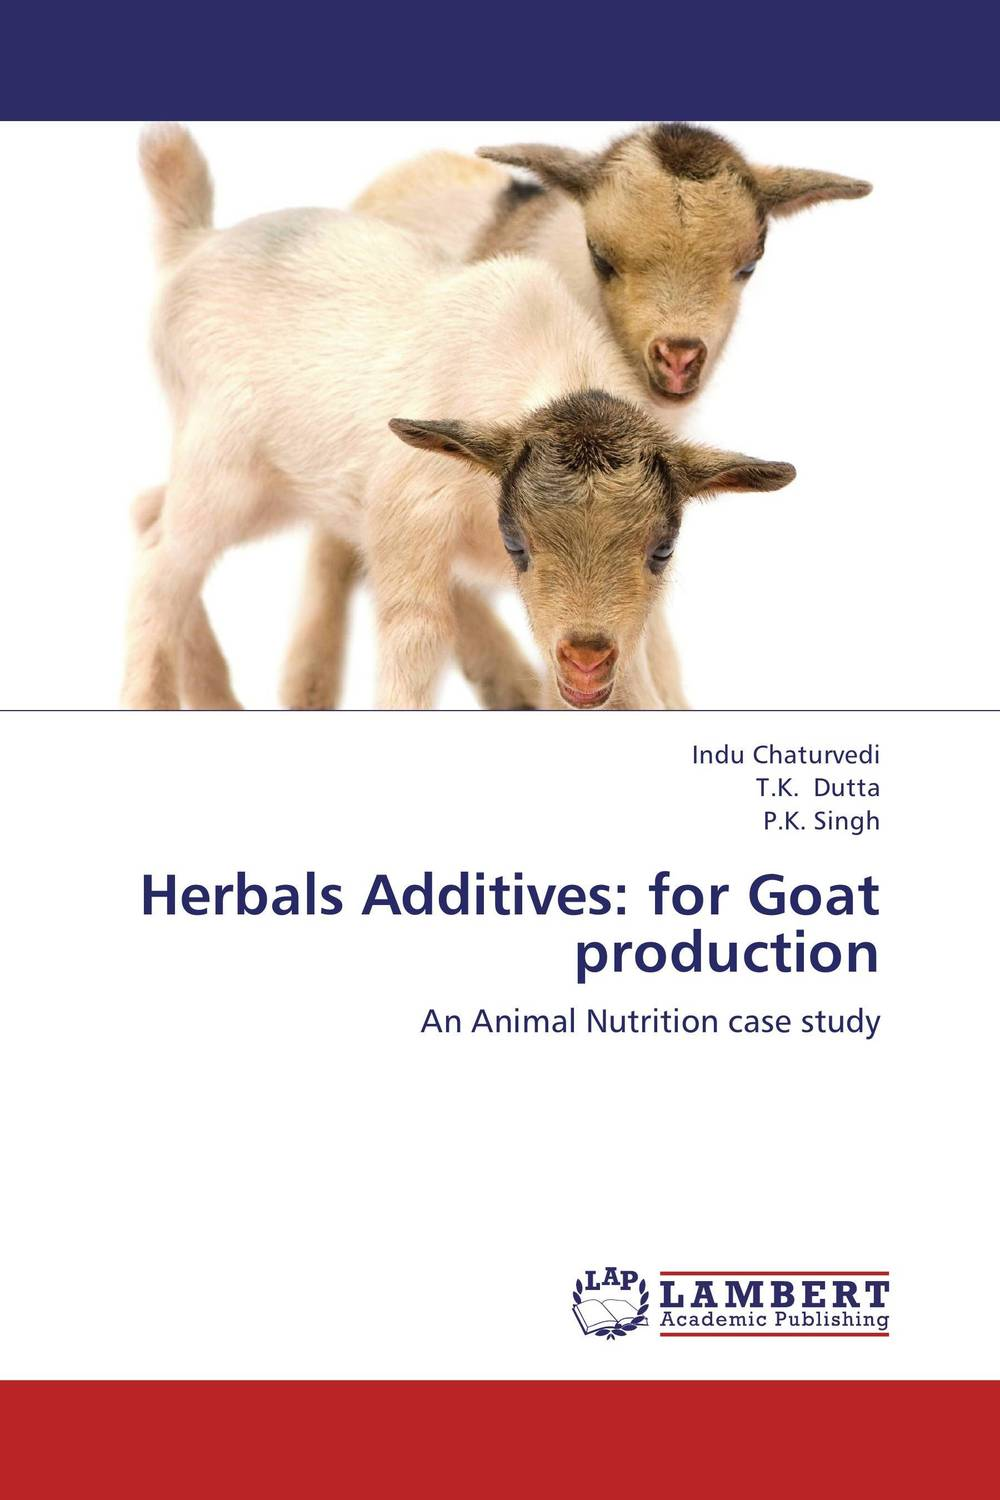 Herbals Additives: for Goat production adsorbent of mycotoxins as feed additives in farm animals